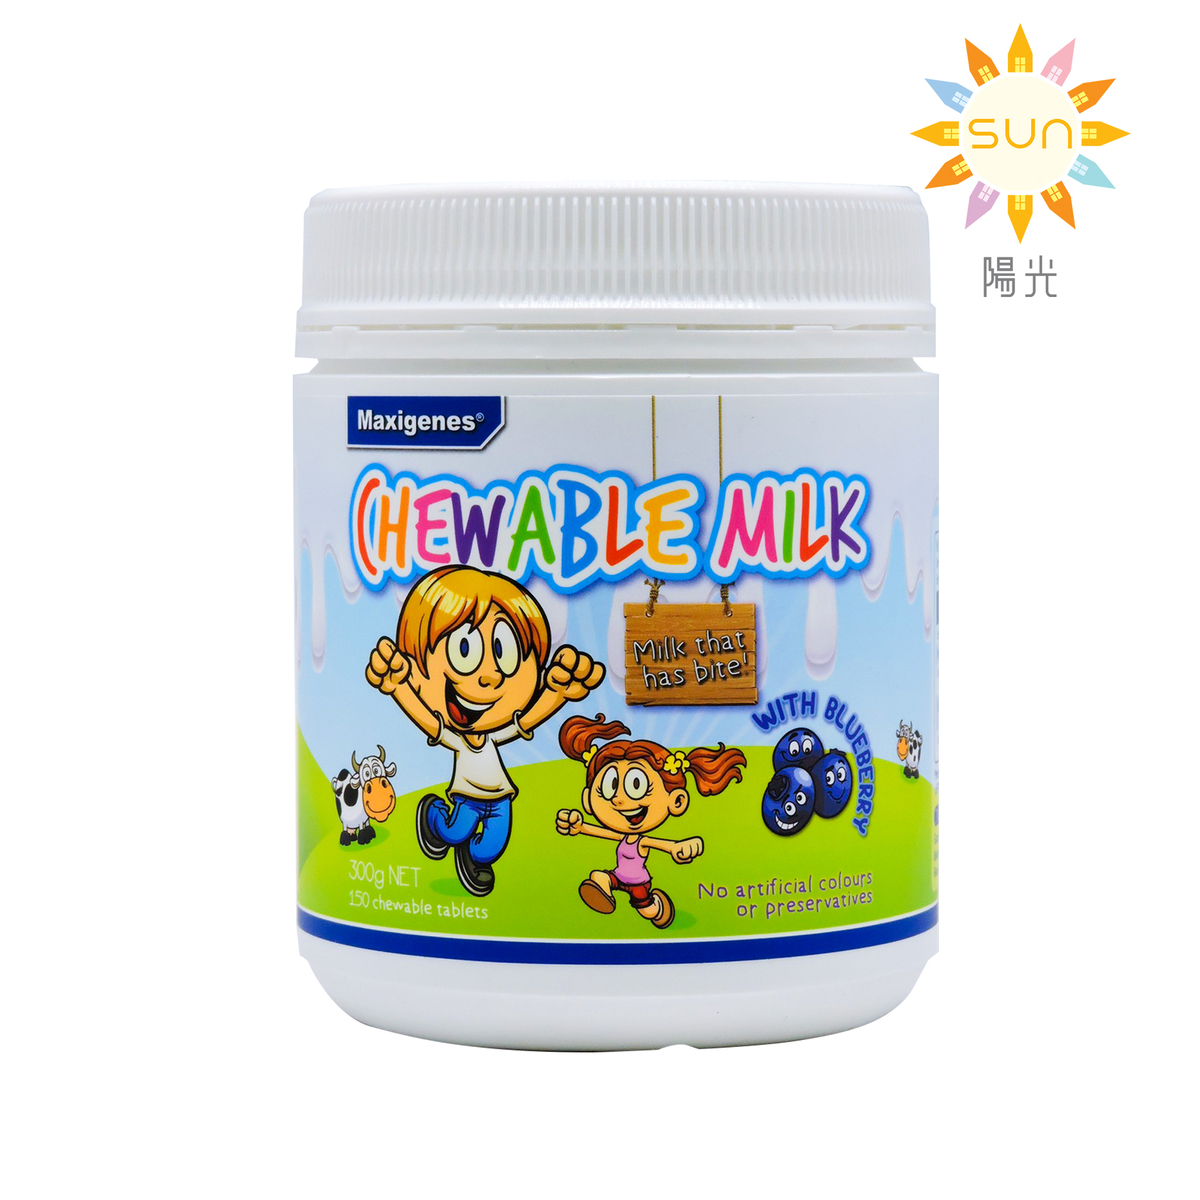 Chewable Milk with Blueberry 150 chewable Tablets